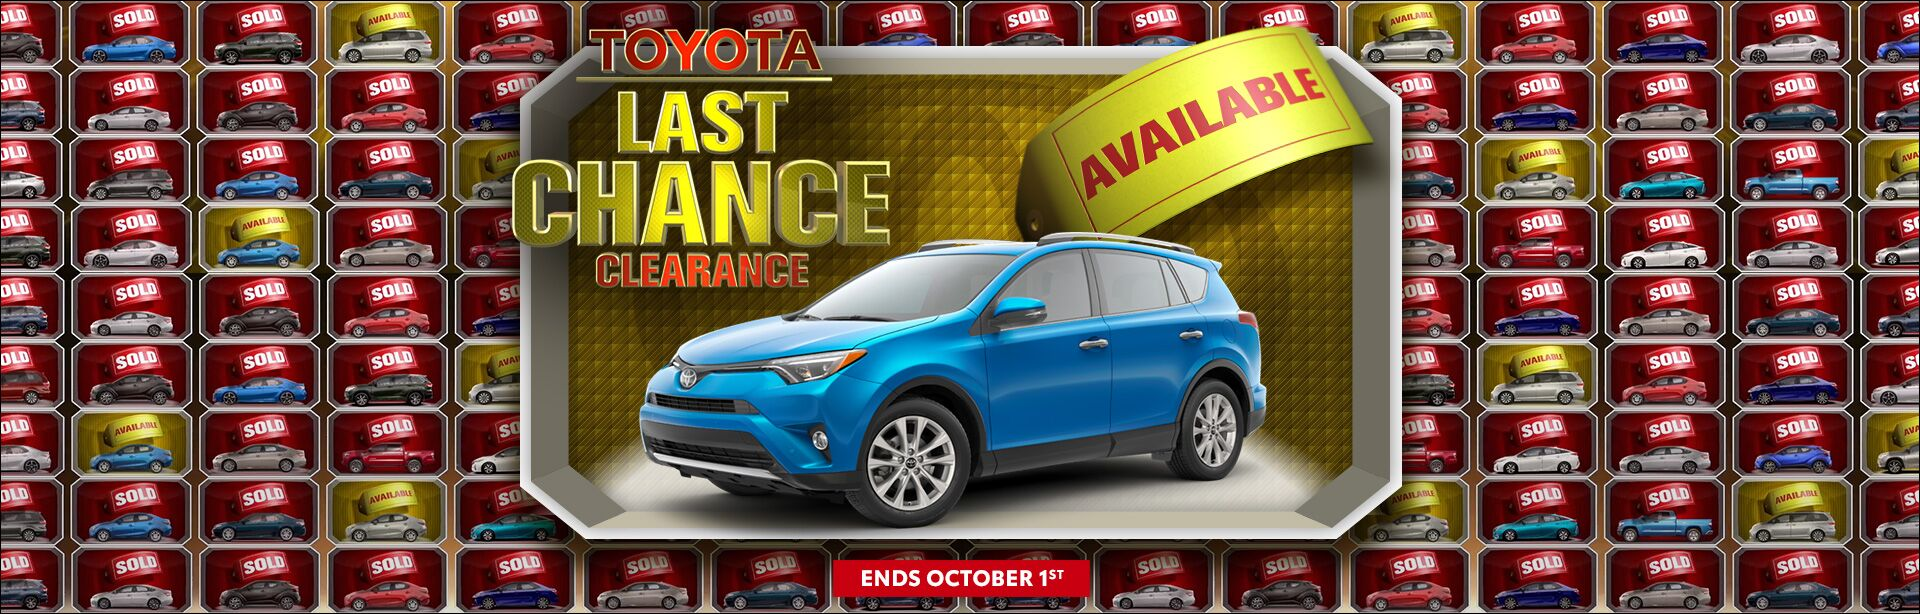 Toyota Last Chance Clearance